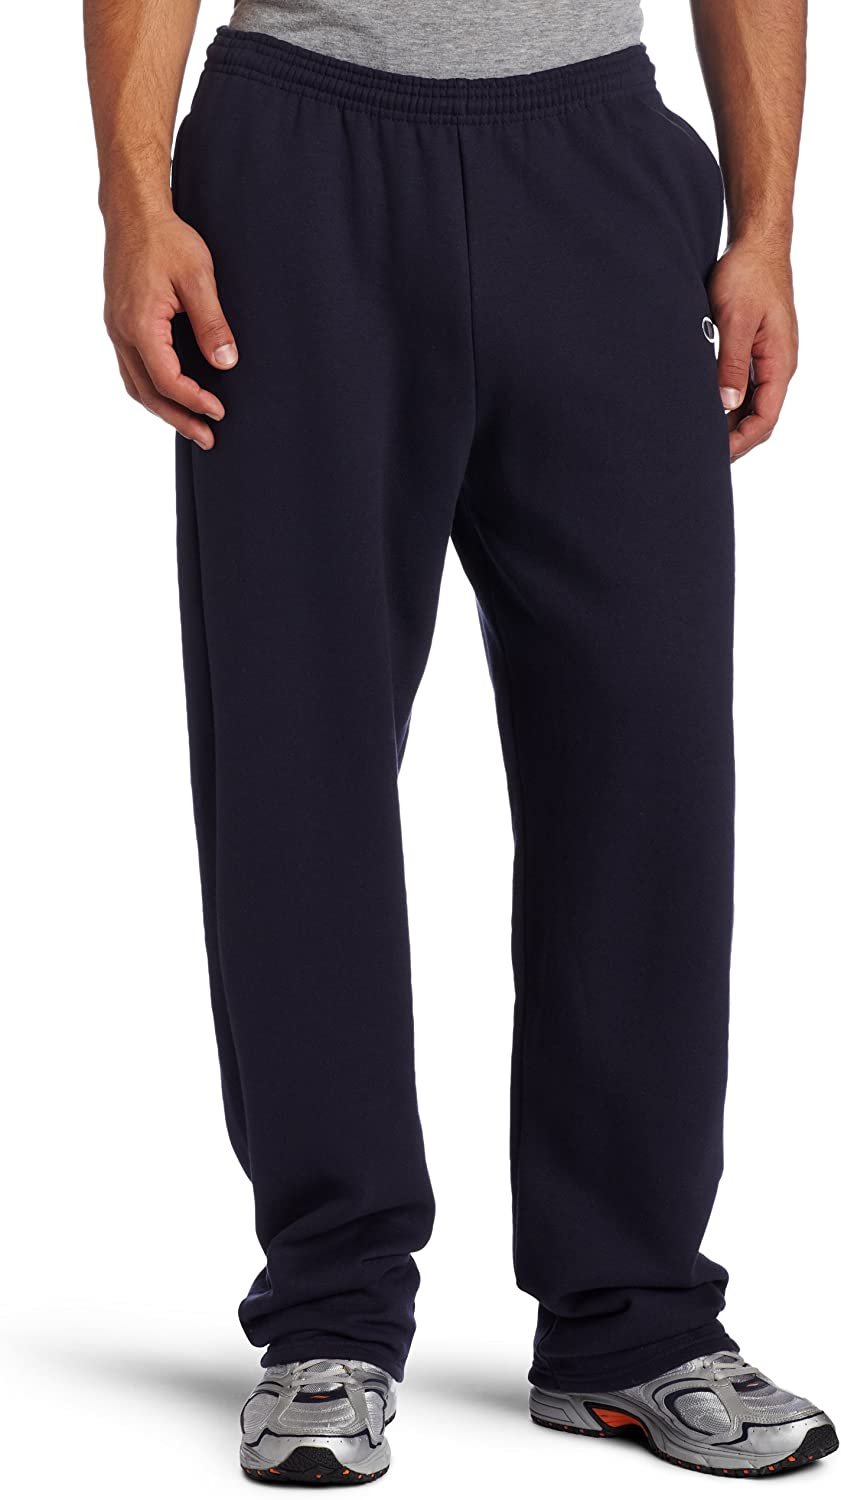 Champion Mens Eco Powerblend Banded Pant